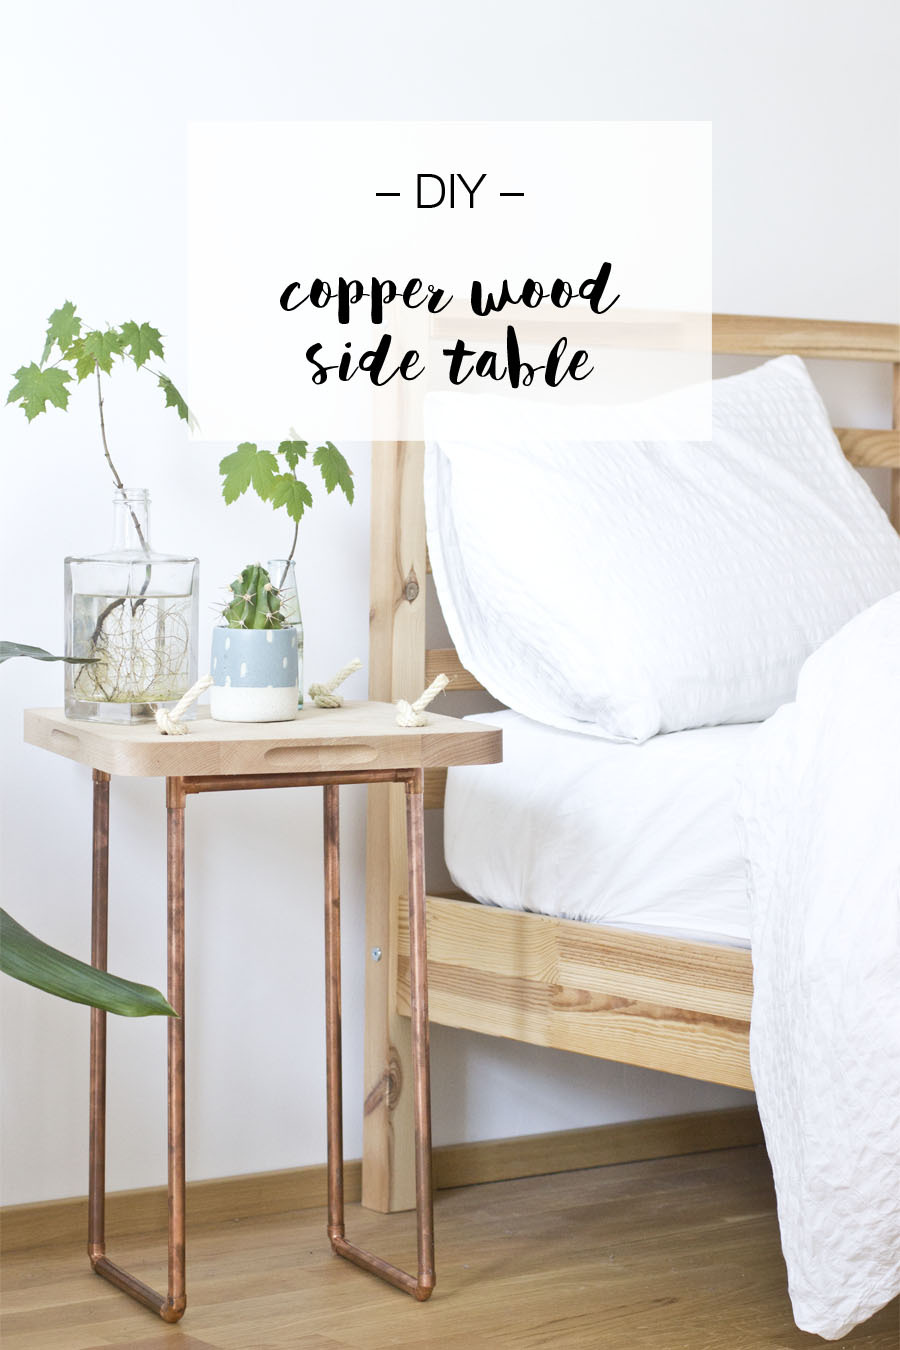 Copper wood side table DIY | LOOK WHAT I MADE ...